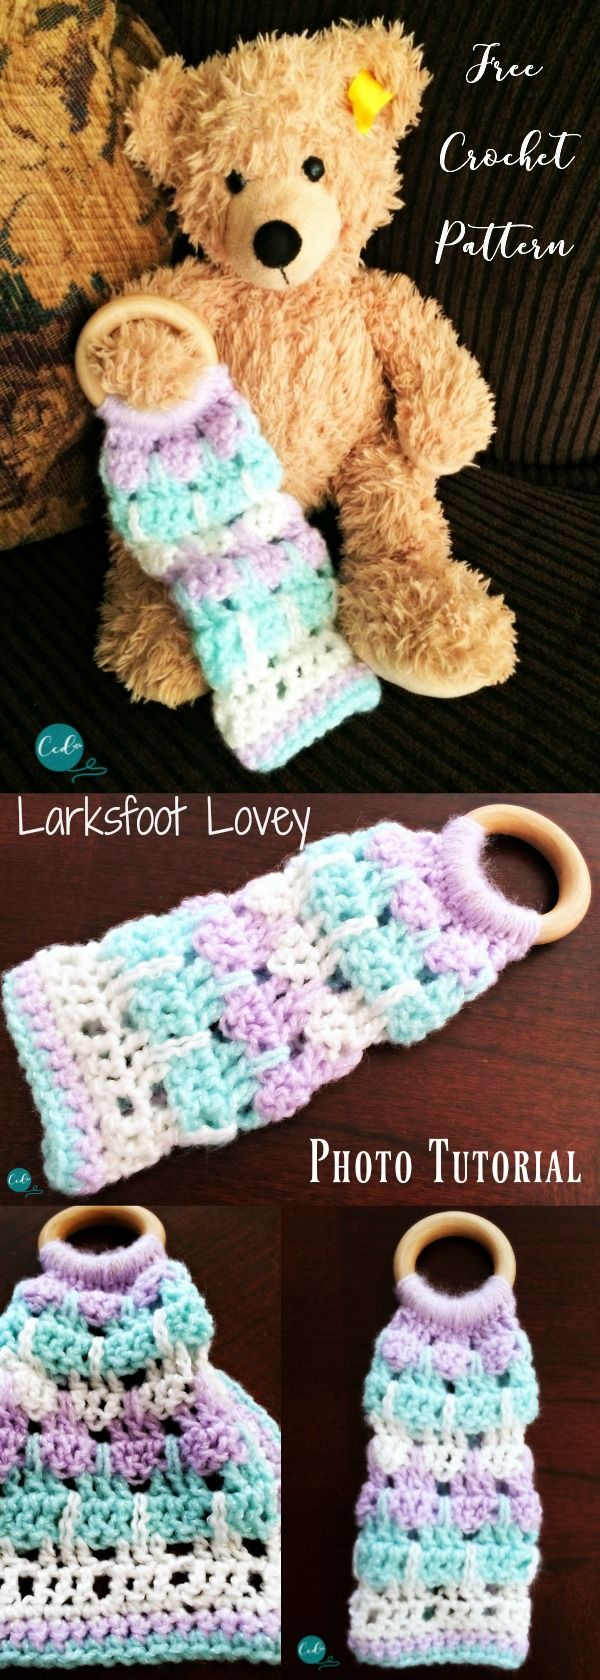 Larksfoot Crochet Lovey Photo Tutorial